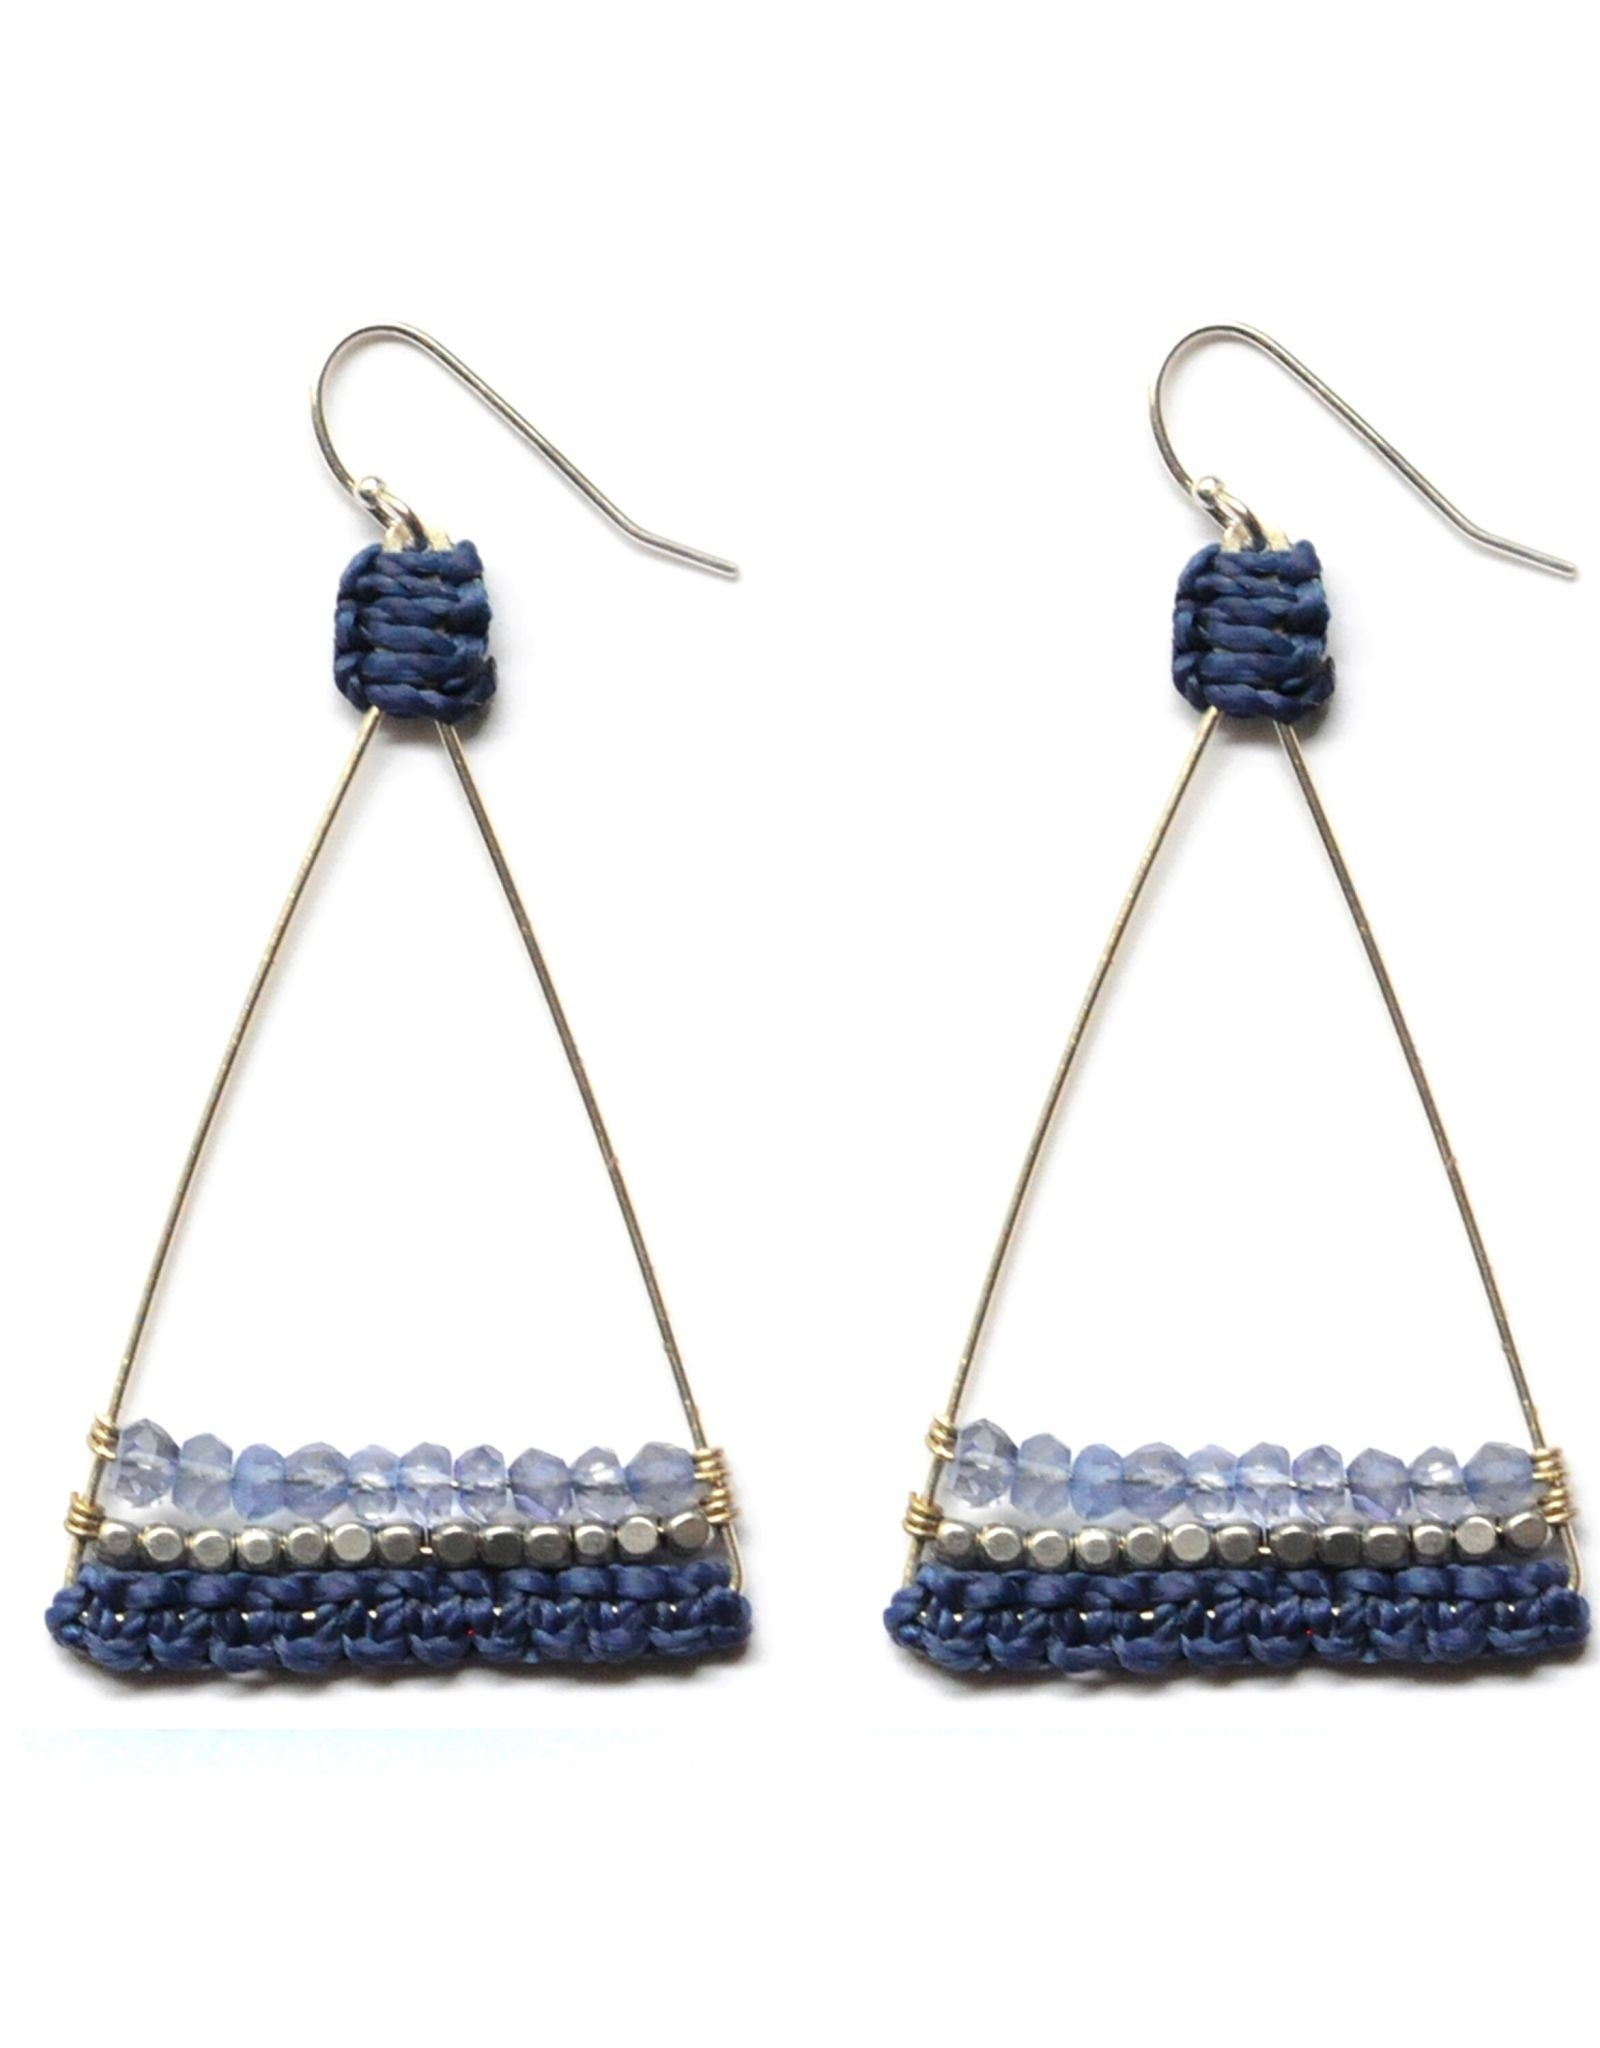 EARRINGS HOOKS SILVER PLATED BRASS TRIANGLE IOLITE AND SILVER BRASS BEADS WITH NAVY THREAD